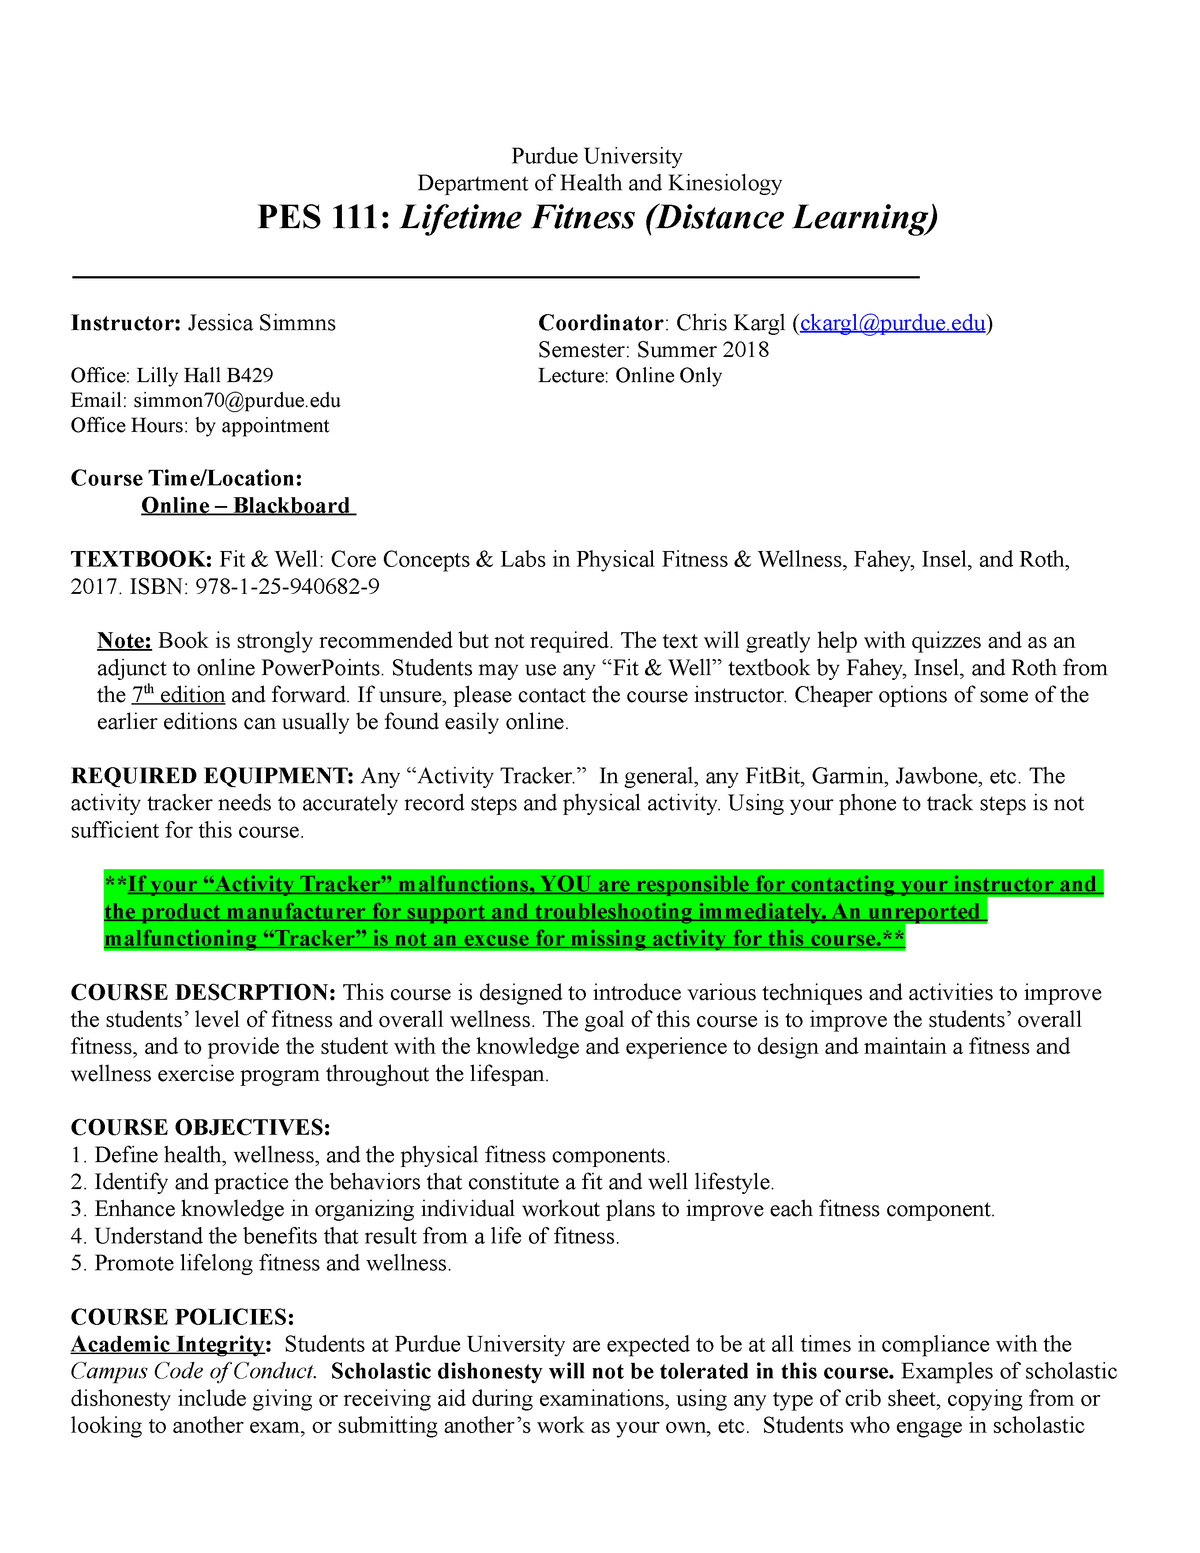 PES 111 Online Syllabus Summer 2018 updated - PES 11100